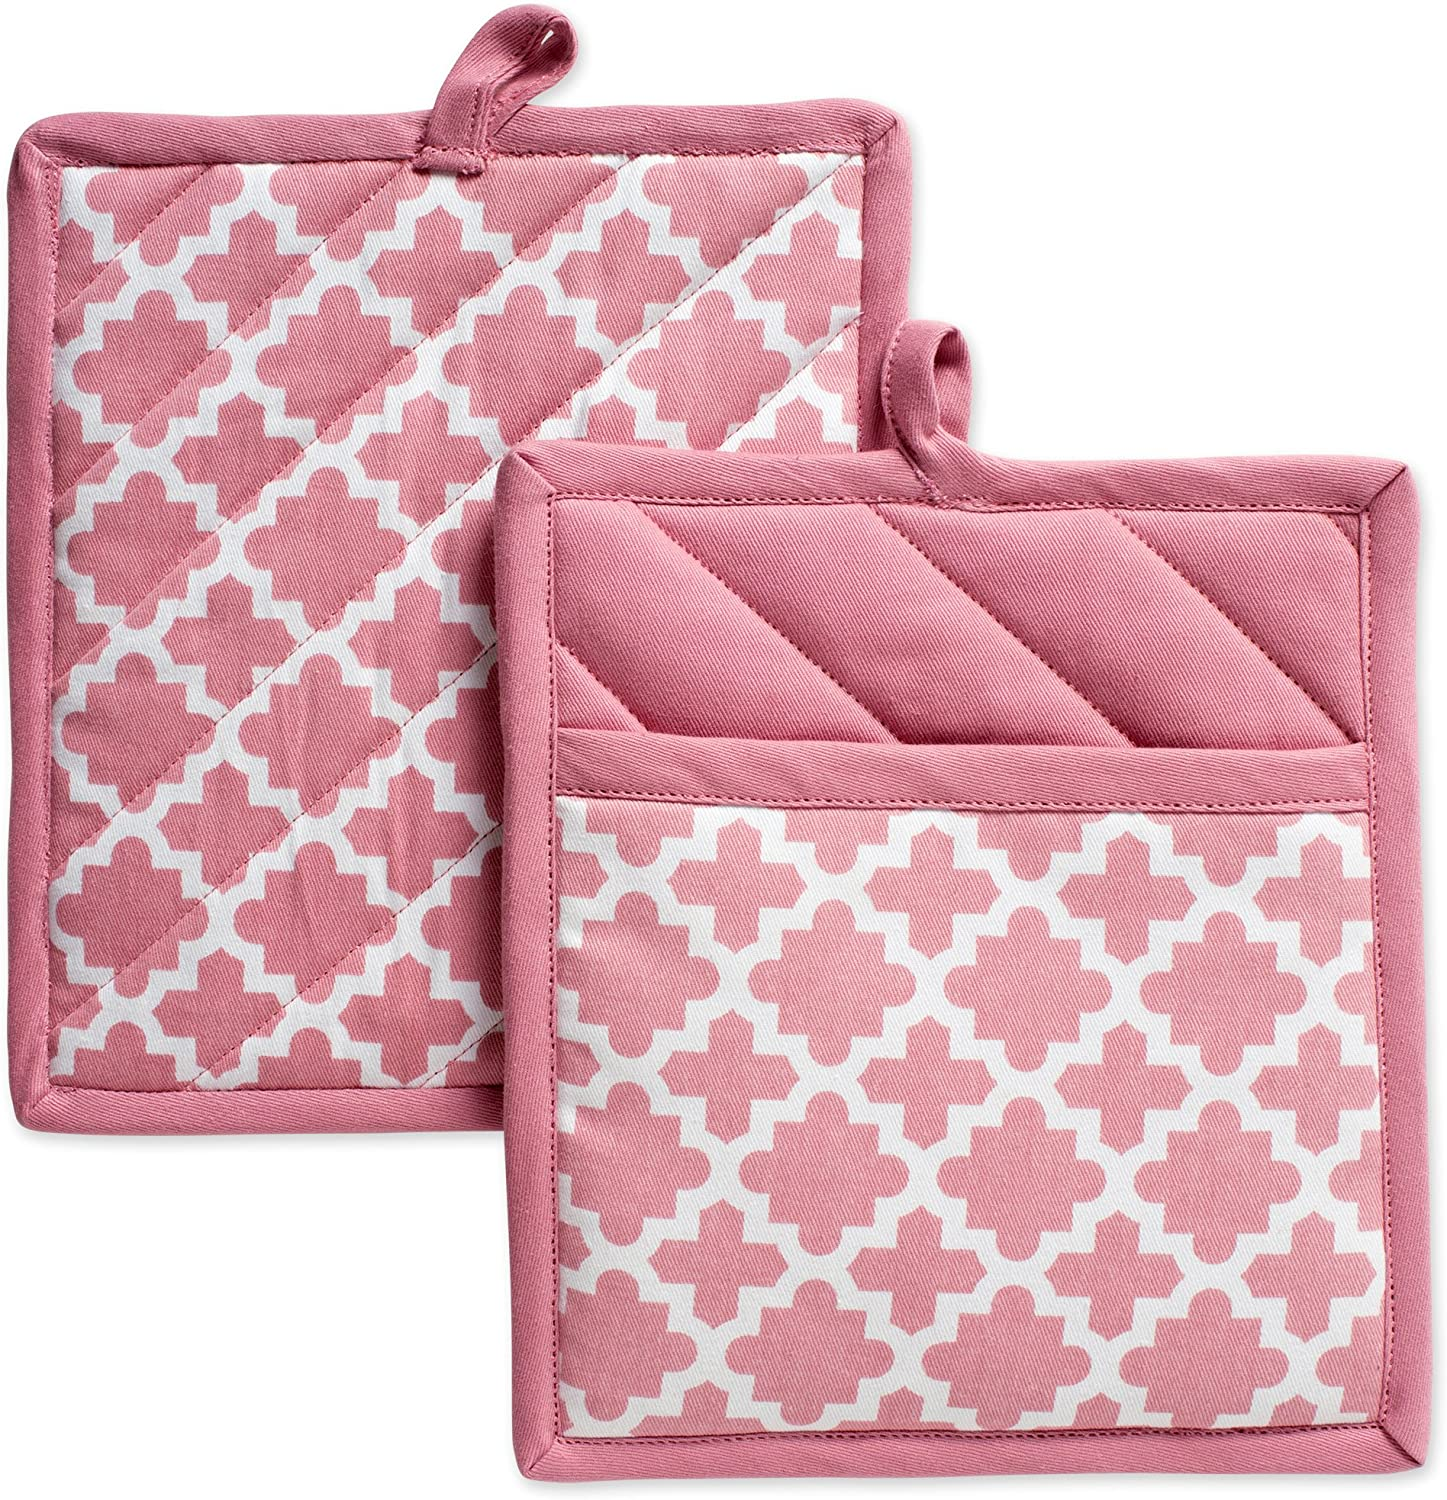 "DII Cotton Lattice Pot Holders, 9 x 8"" Set of 2, Machine Washable and Heat Resistant Hot Pad for Everyday Kitchen Cooking & Baking-Rose Pink"